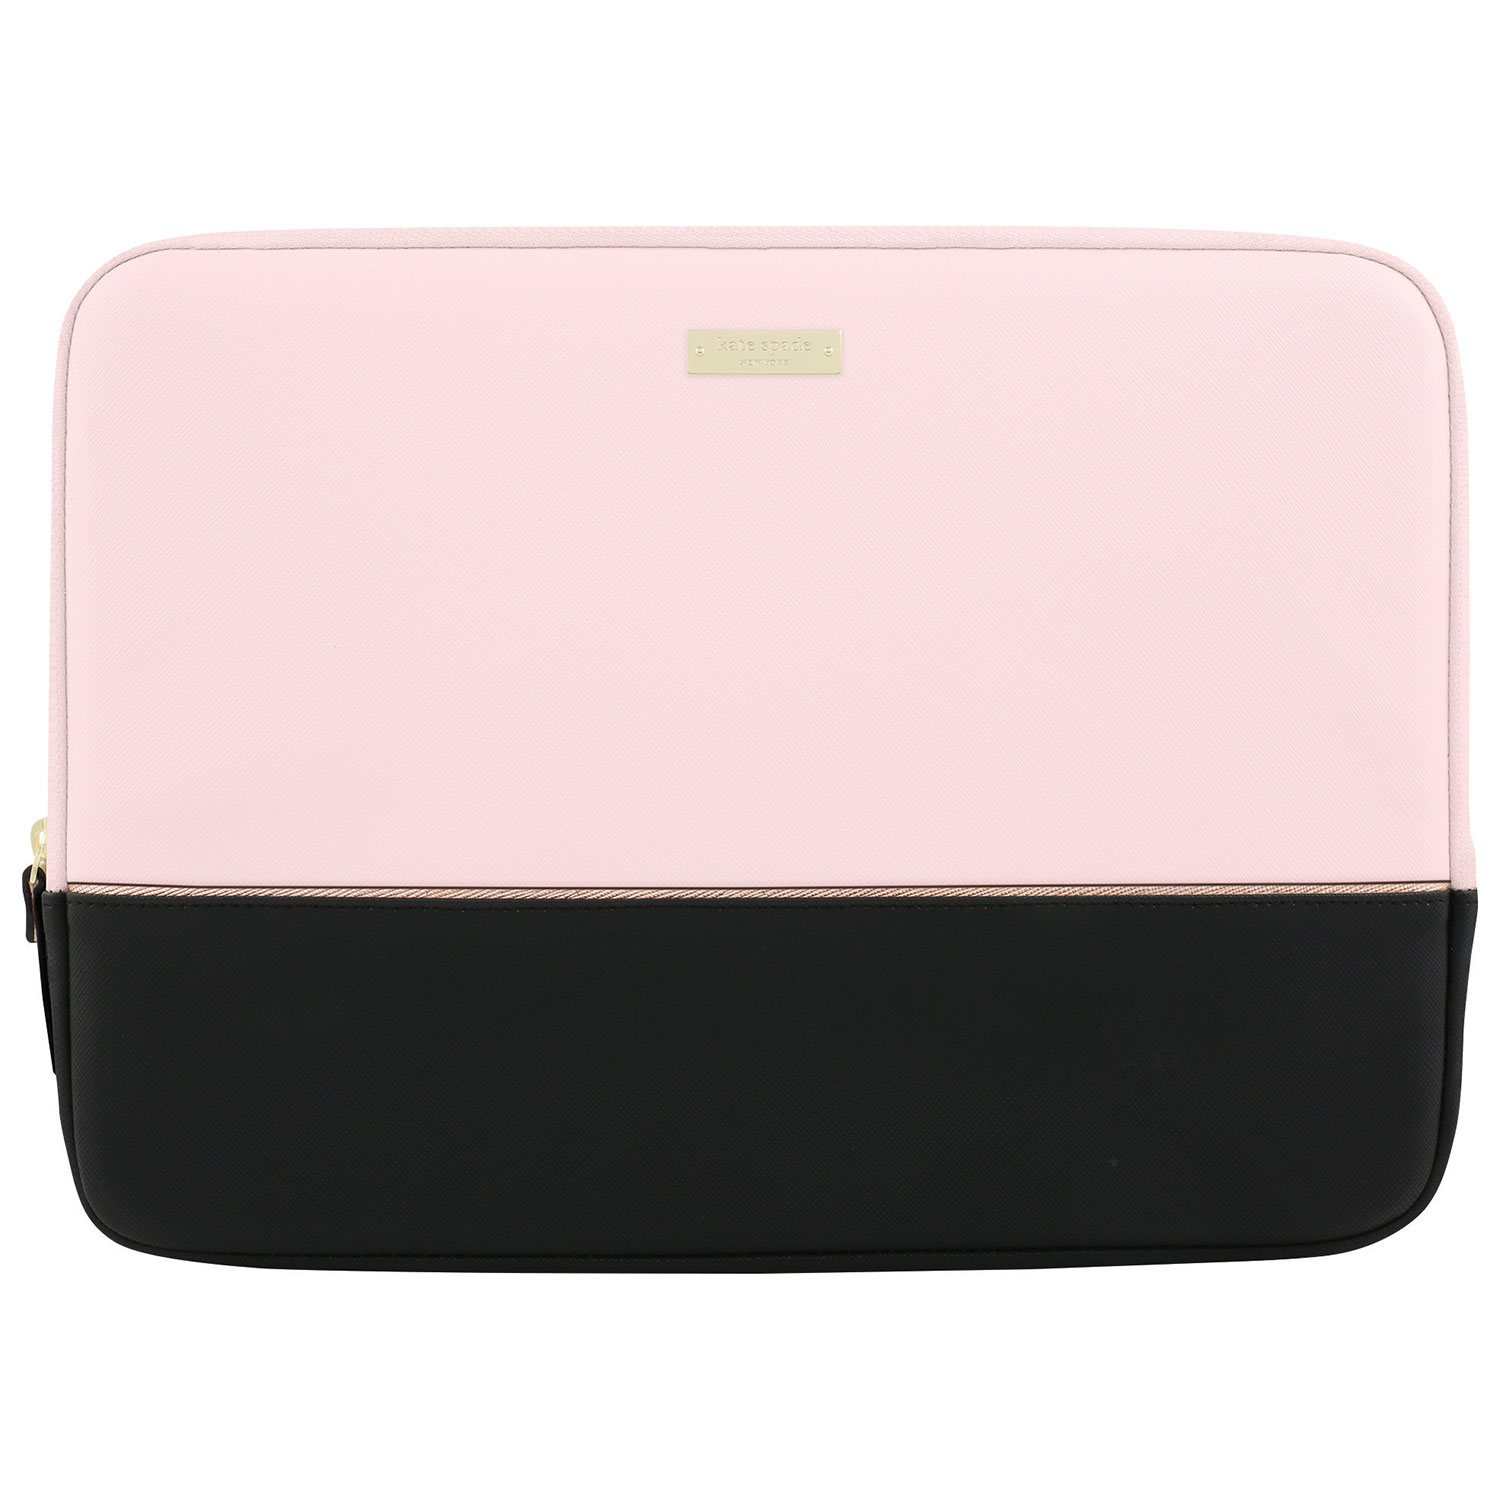 sports shoes f6303 d4376 Kate Spade cases and sleeves to protect your devices in style | Best ...